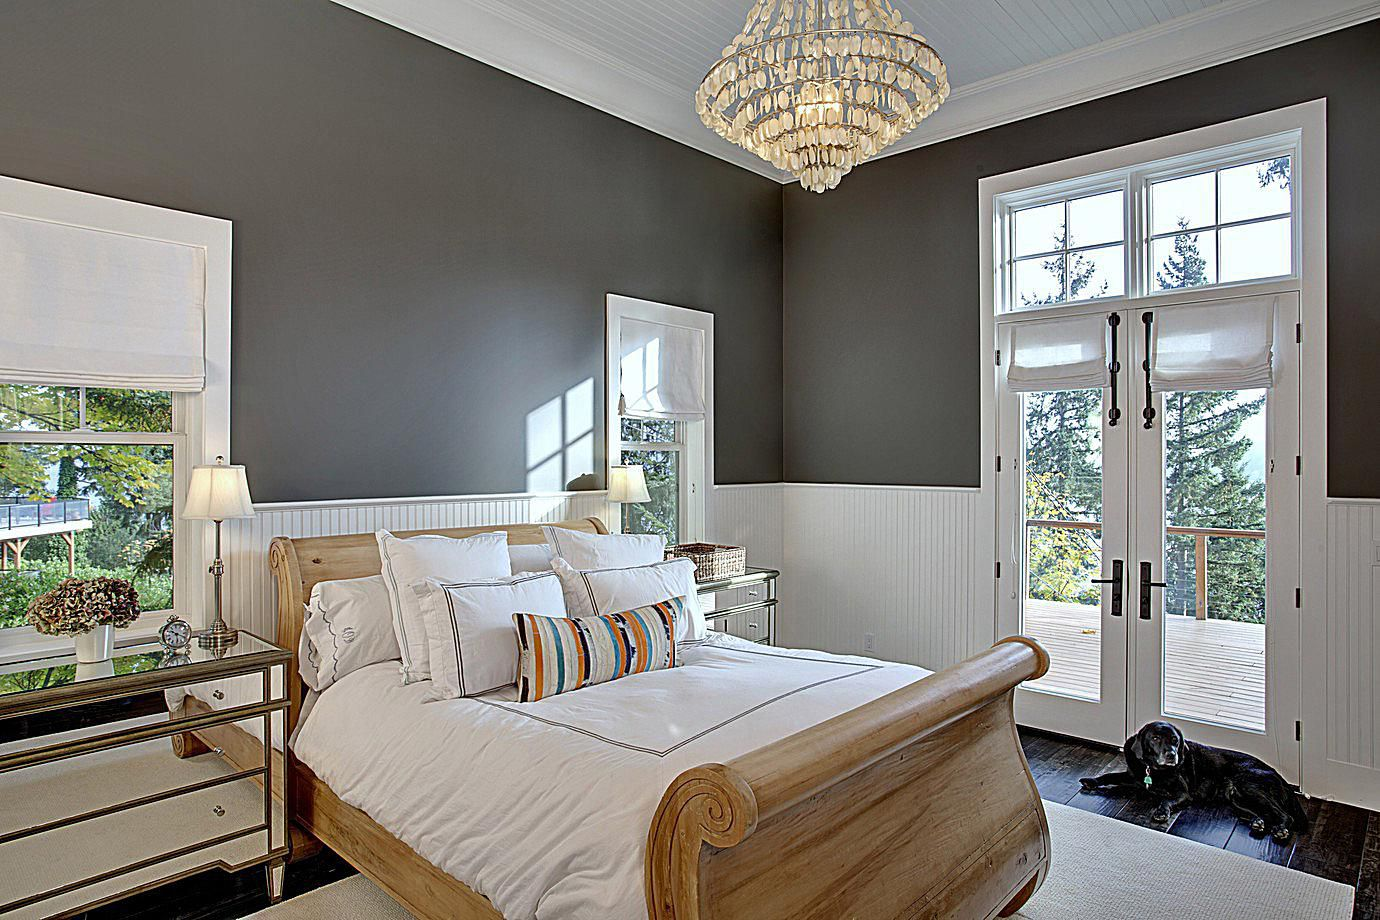 Our Step by Step Guide to Designing a Beautiful Bedroom. 10 Tips for Decorating a Beautiful Bedroom